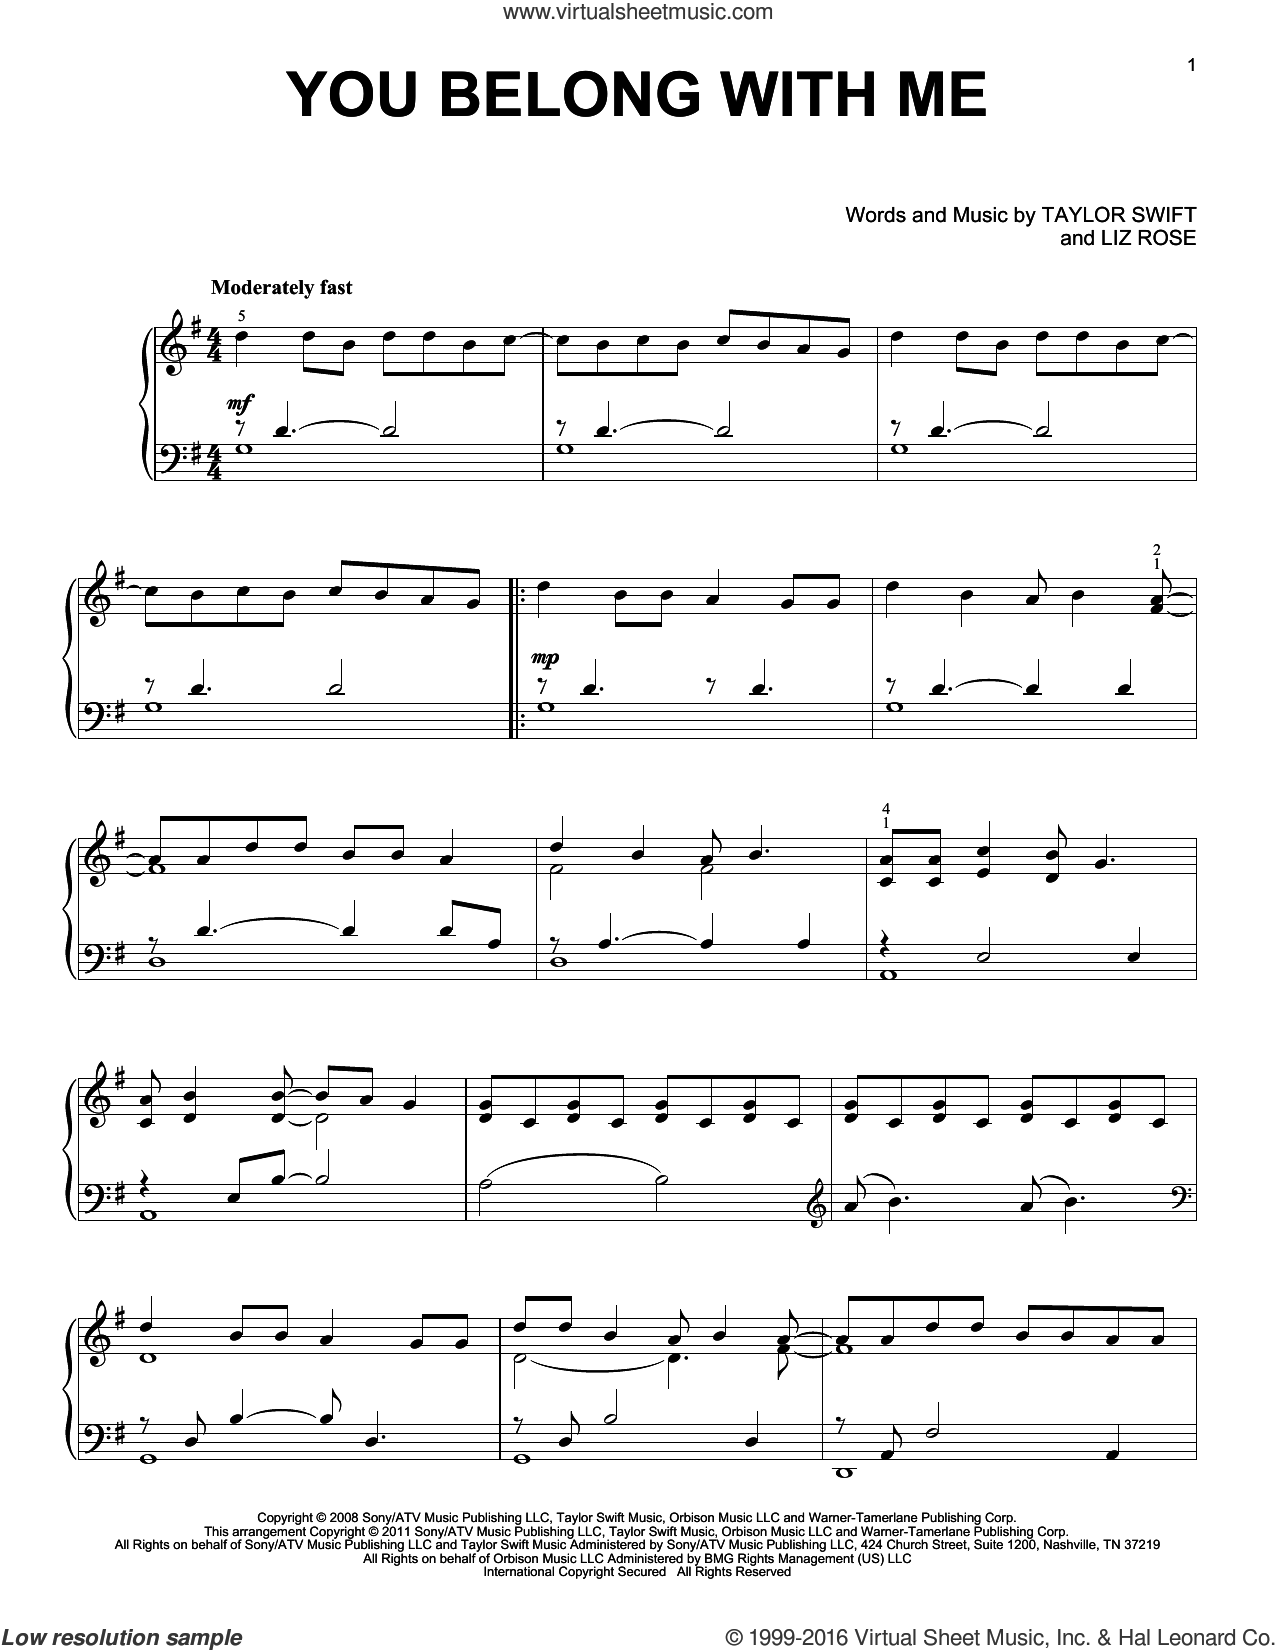 You Belong With Me, (intermediate) sheet music for piano solo by Taylor Swift and Liz Rose, intermediate skill level